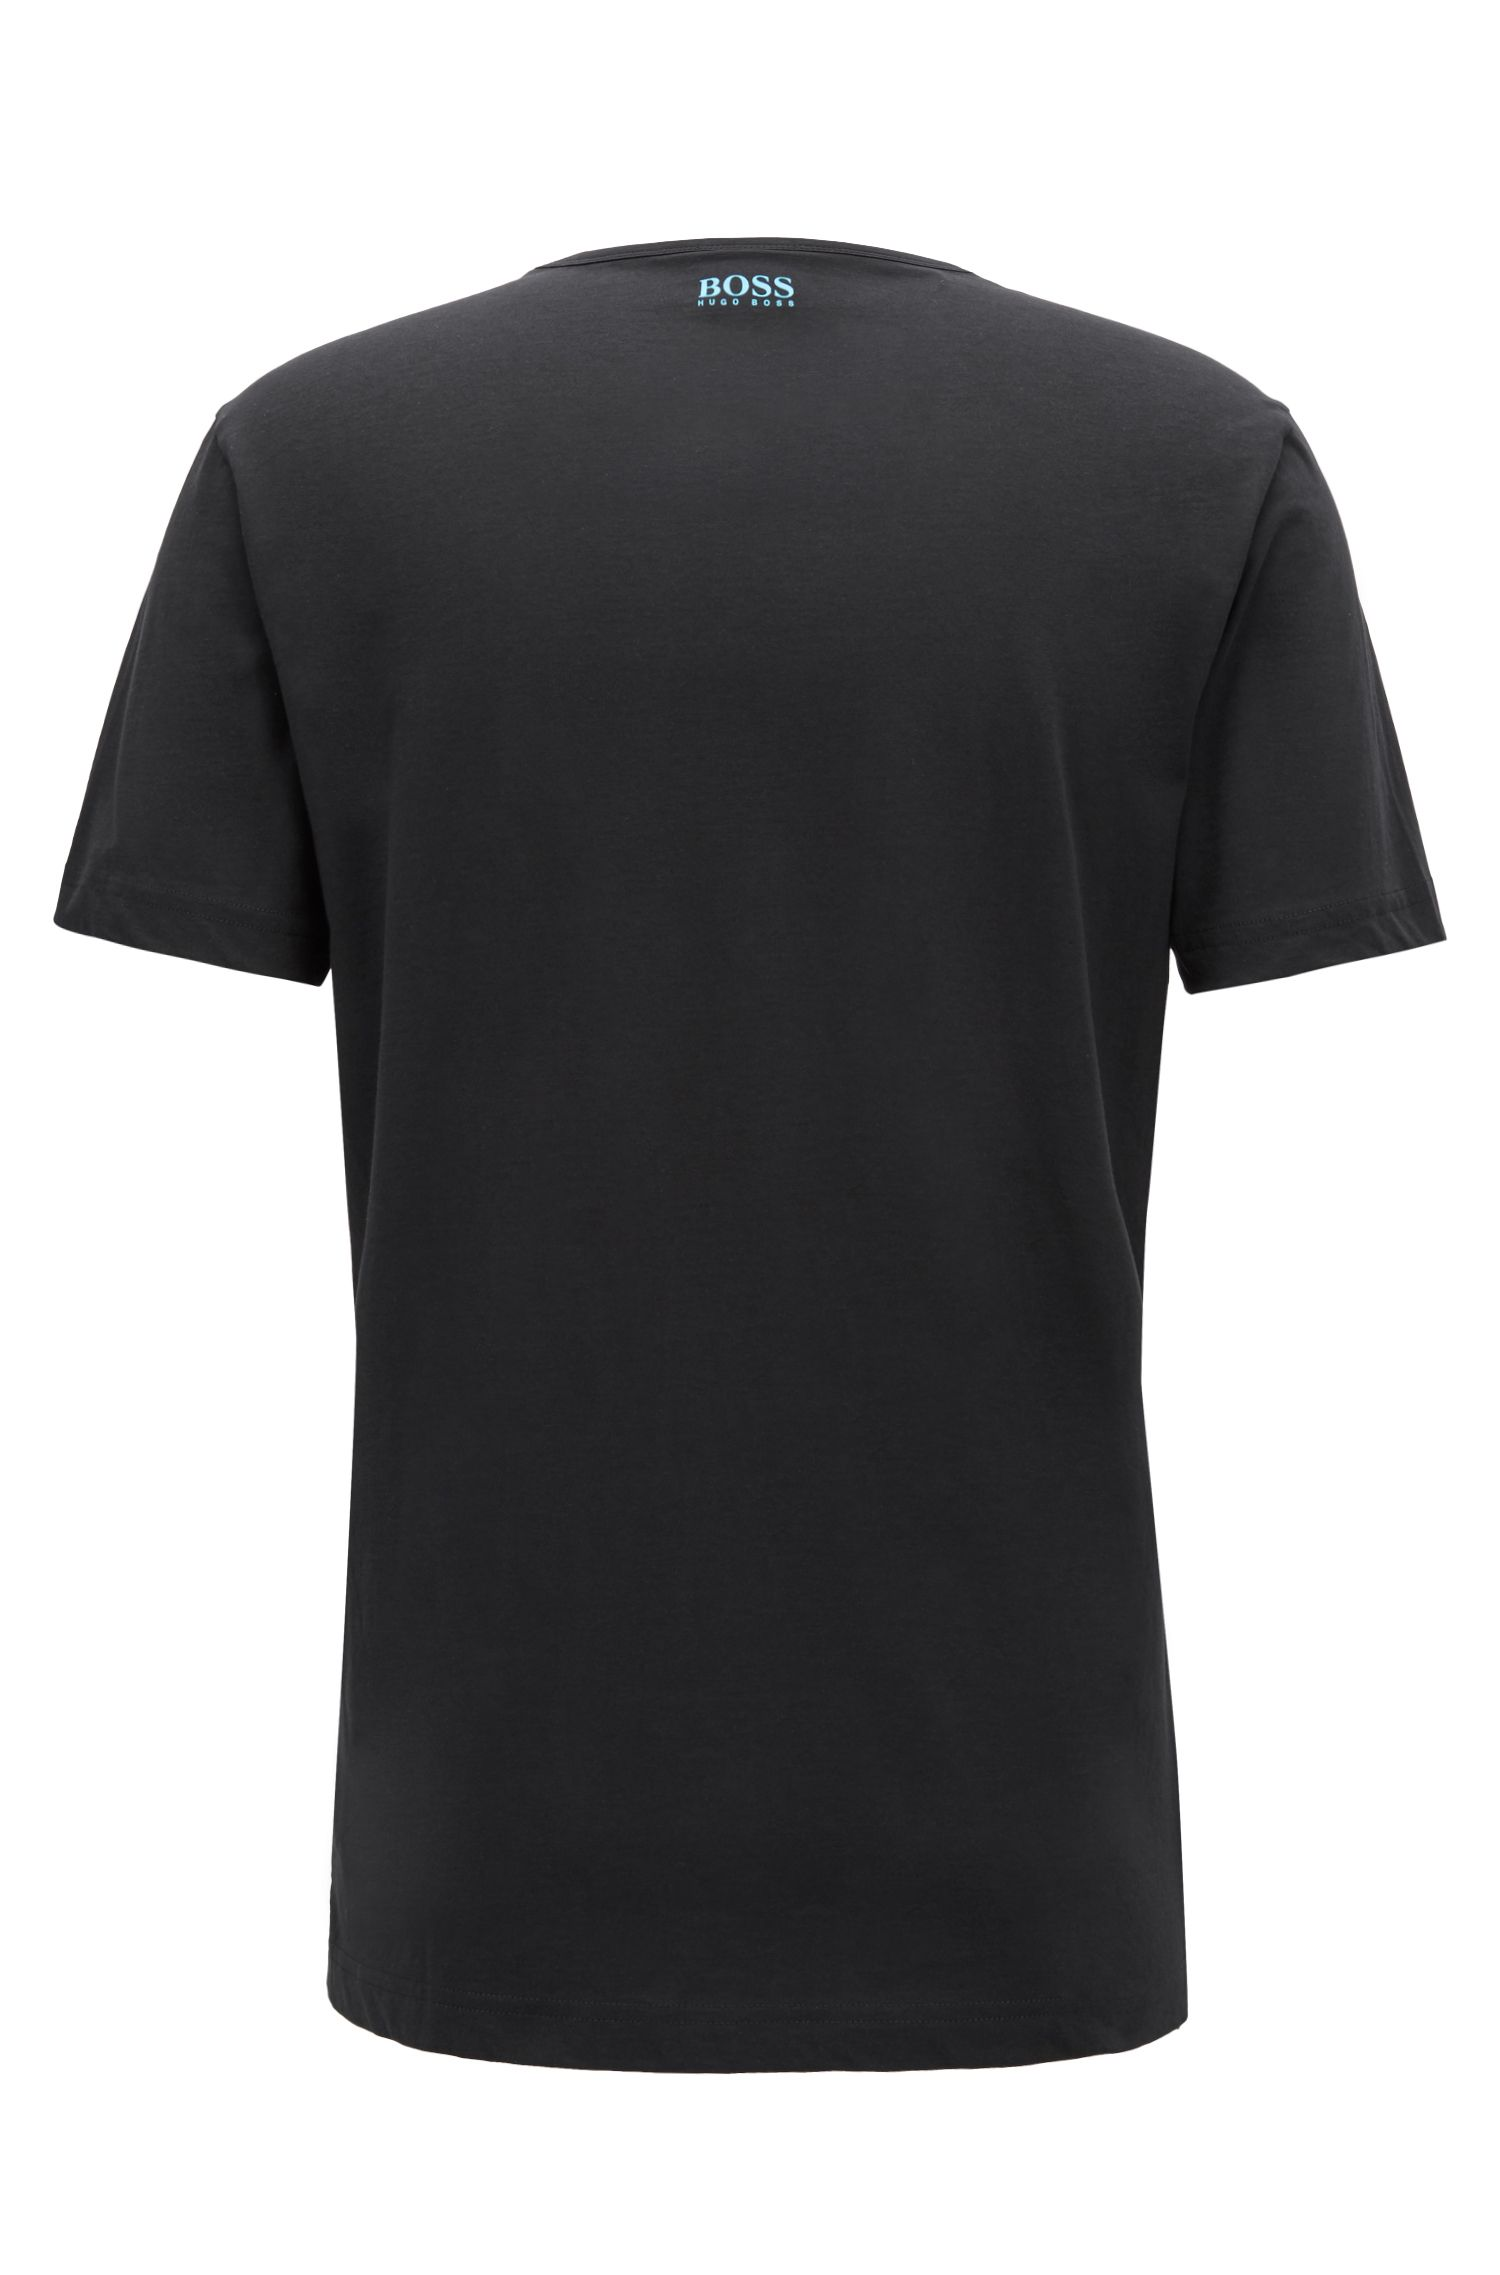 Regular-fit T-shirt in cotton jersey with logo artwork, Black